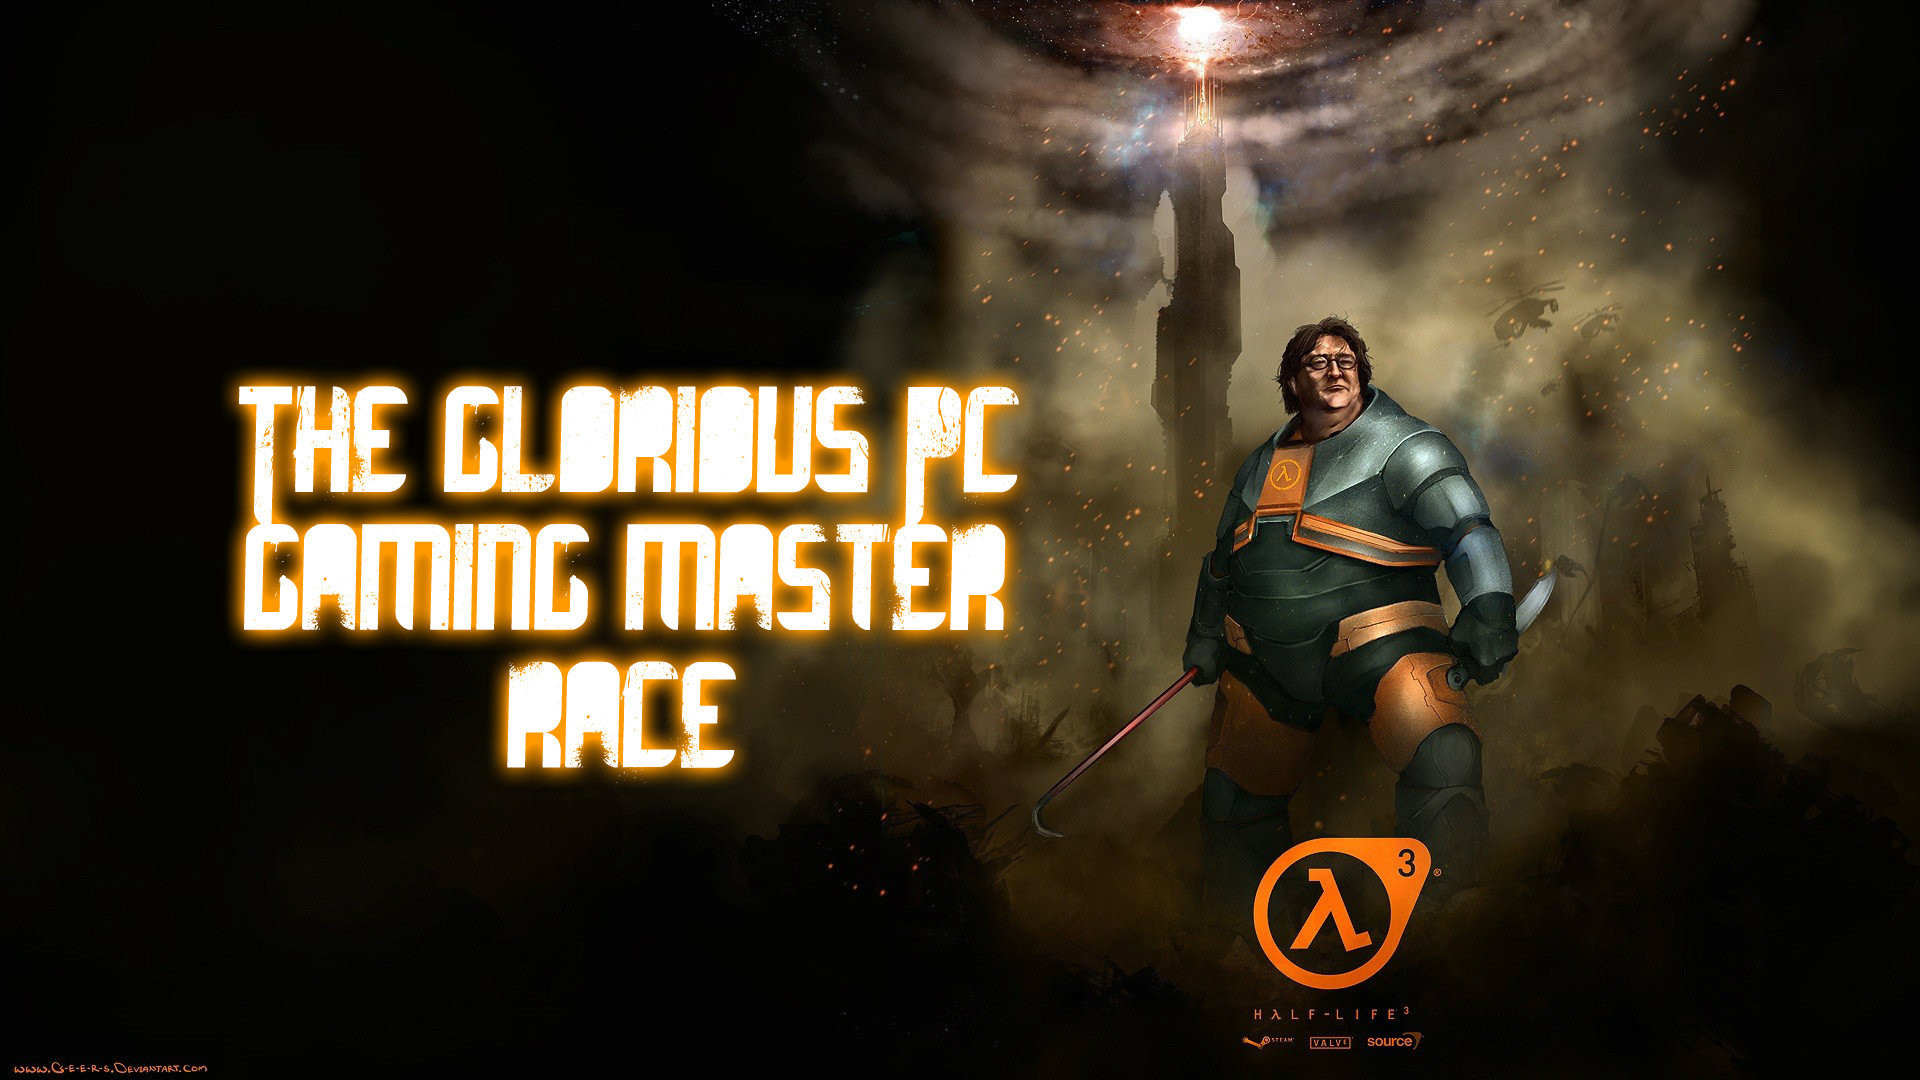 any 1920x1080p Gaben wallpapers? PC MASTER RACE – #131914698 added